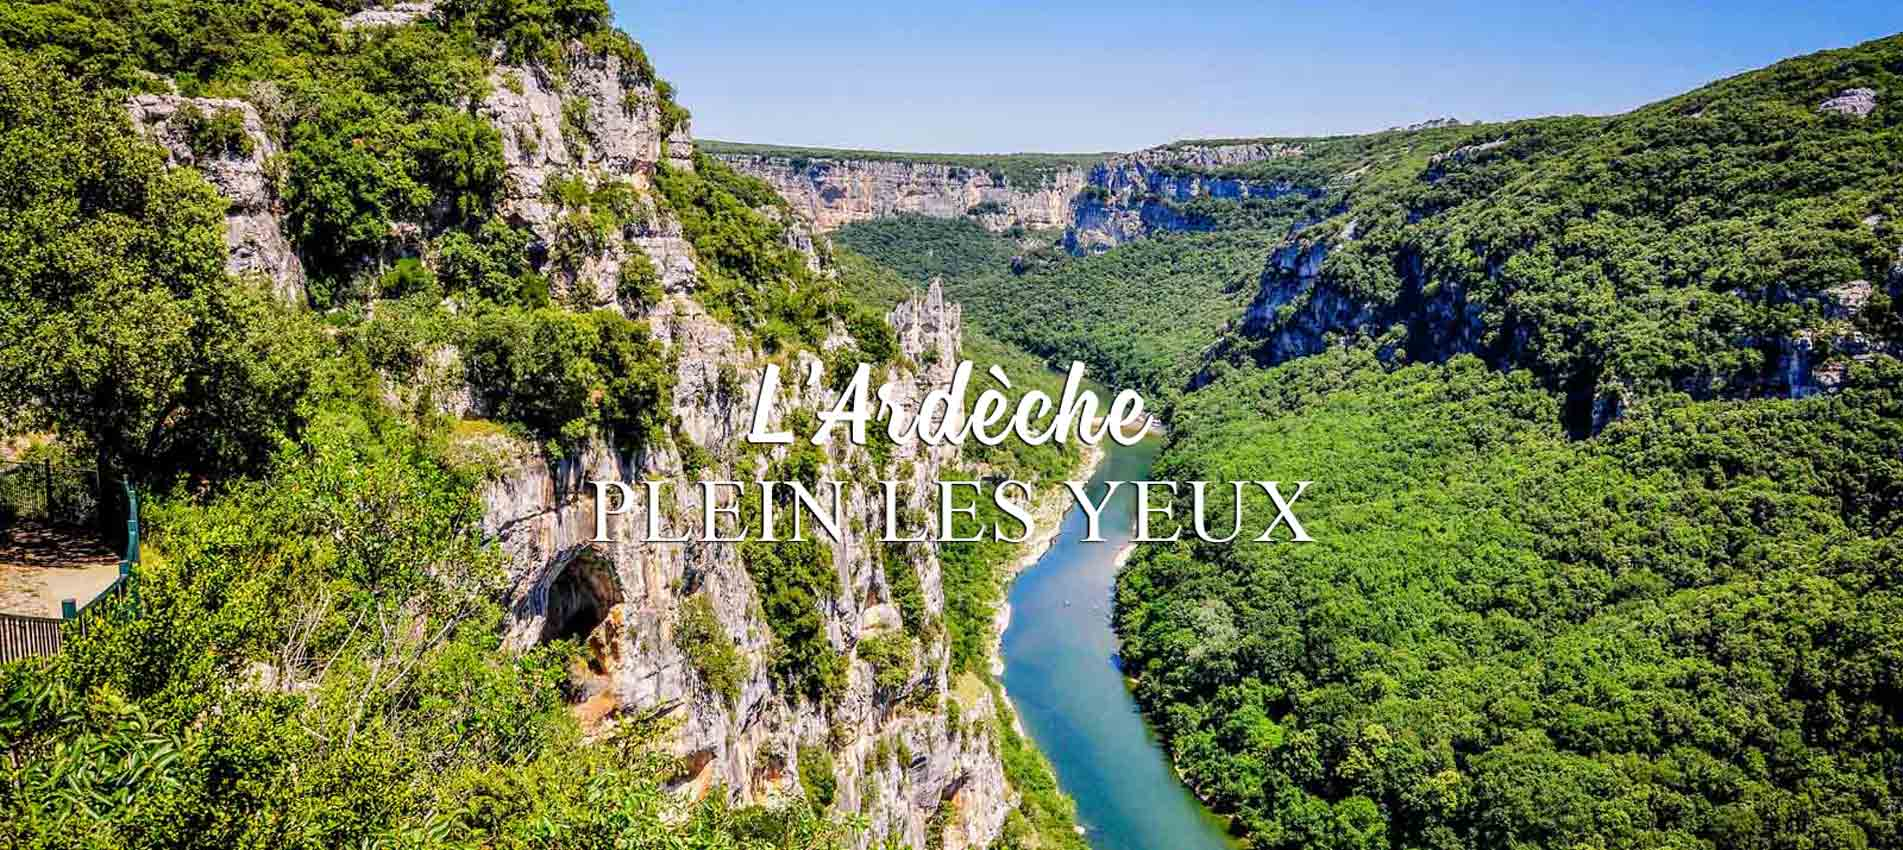 camping 4 toiles location ardeche camping location ardeche camping piscine